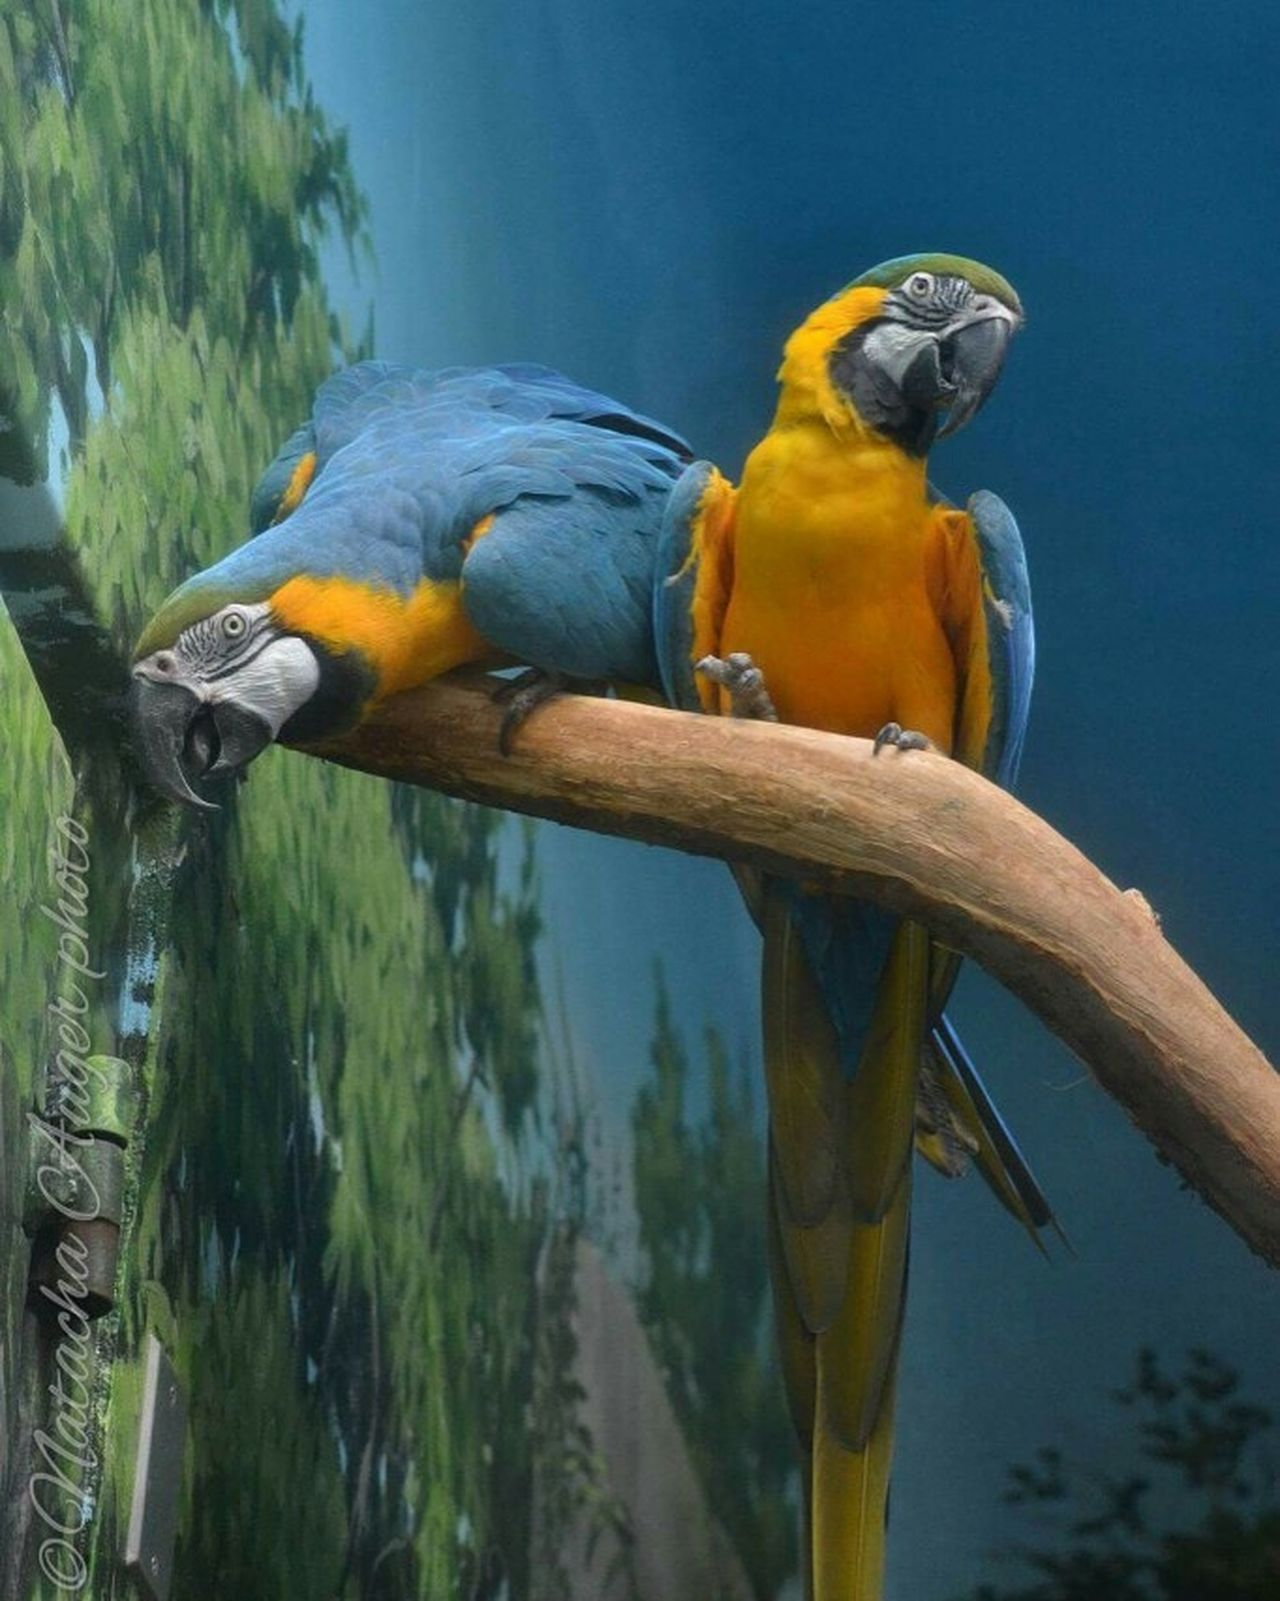 MacawParrot Macaw, Bird Macaw Parrot Macaw Nophotoshop No Filter, No Edit, Just Photography Nikonphotography Nikon Bird Zoo Granby Zoo Zoodegranby Animal Photography Animal Themes Animal Lover Bird Photography BirdLovers Zoo Animals